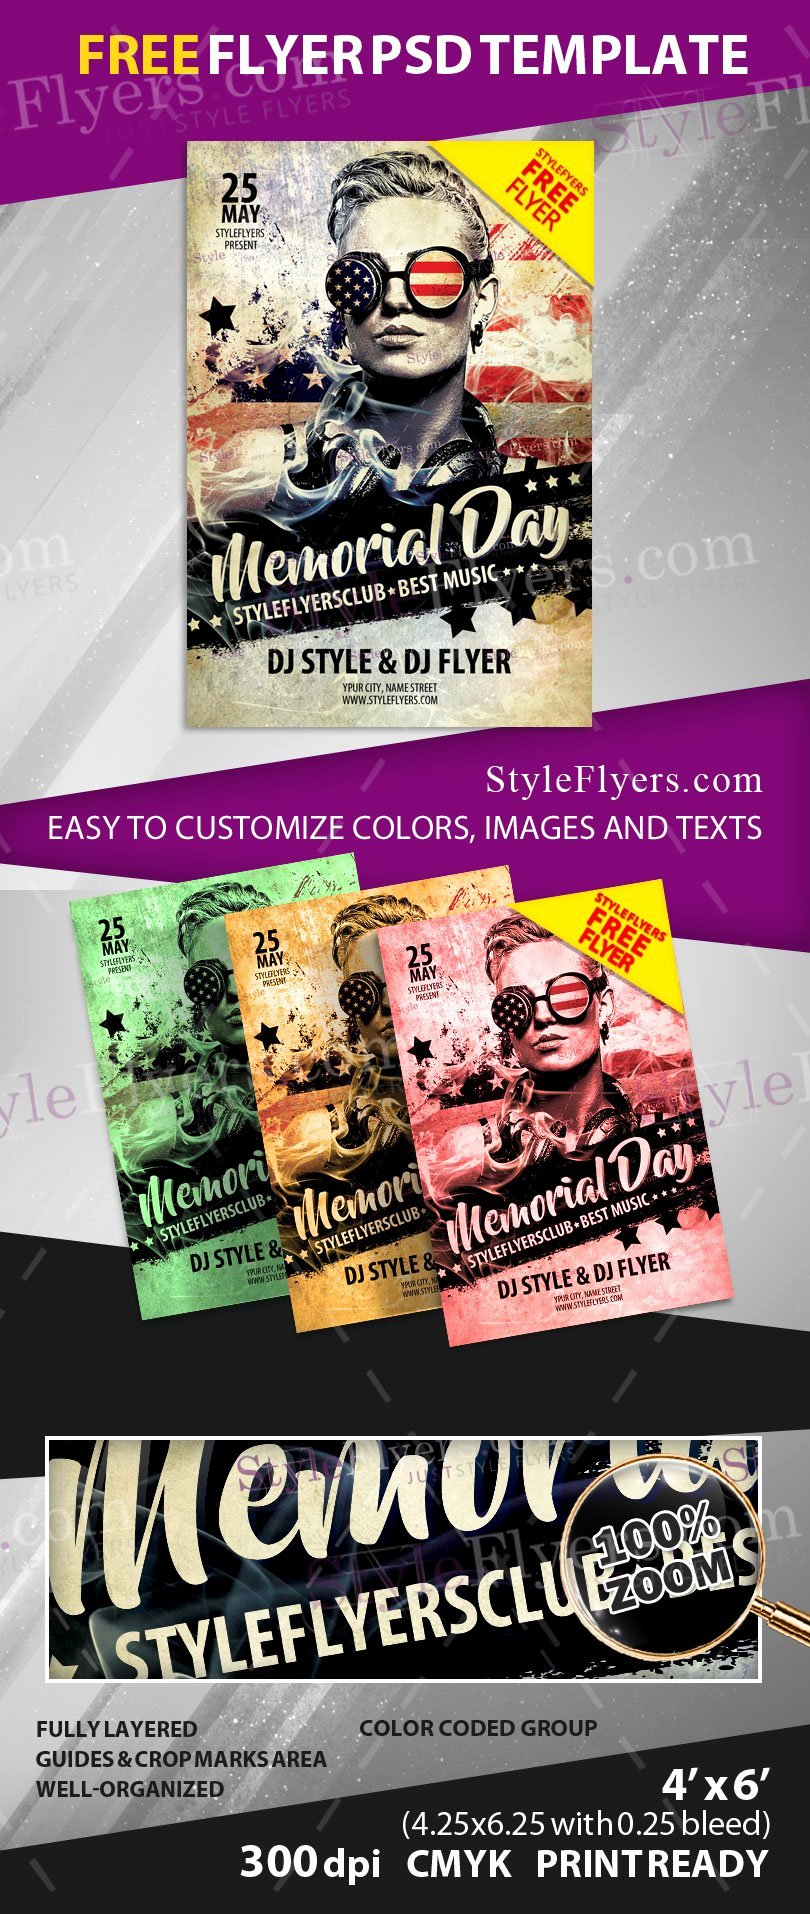 Memorial Day Flyer Template Free Beautiful Memorial Day Free Psd Flyer Template Free Download Styleflyers